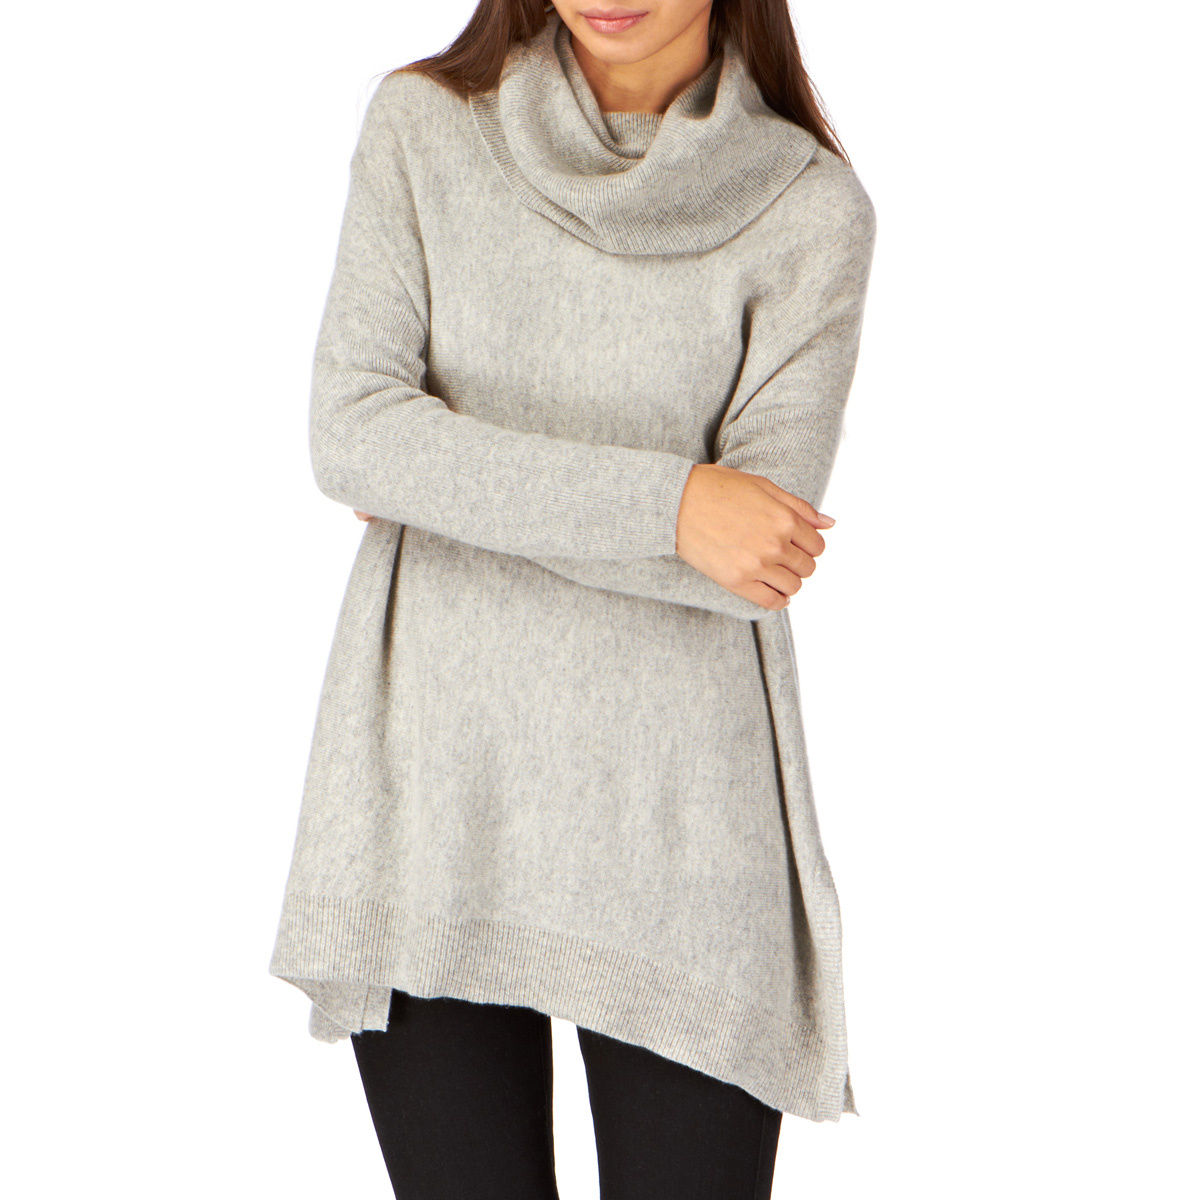 cashmere jumper cashmere jumpers the designs available are plain colors, floral designs,  bird designs, lines EOHZPBS